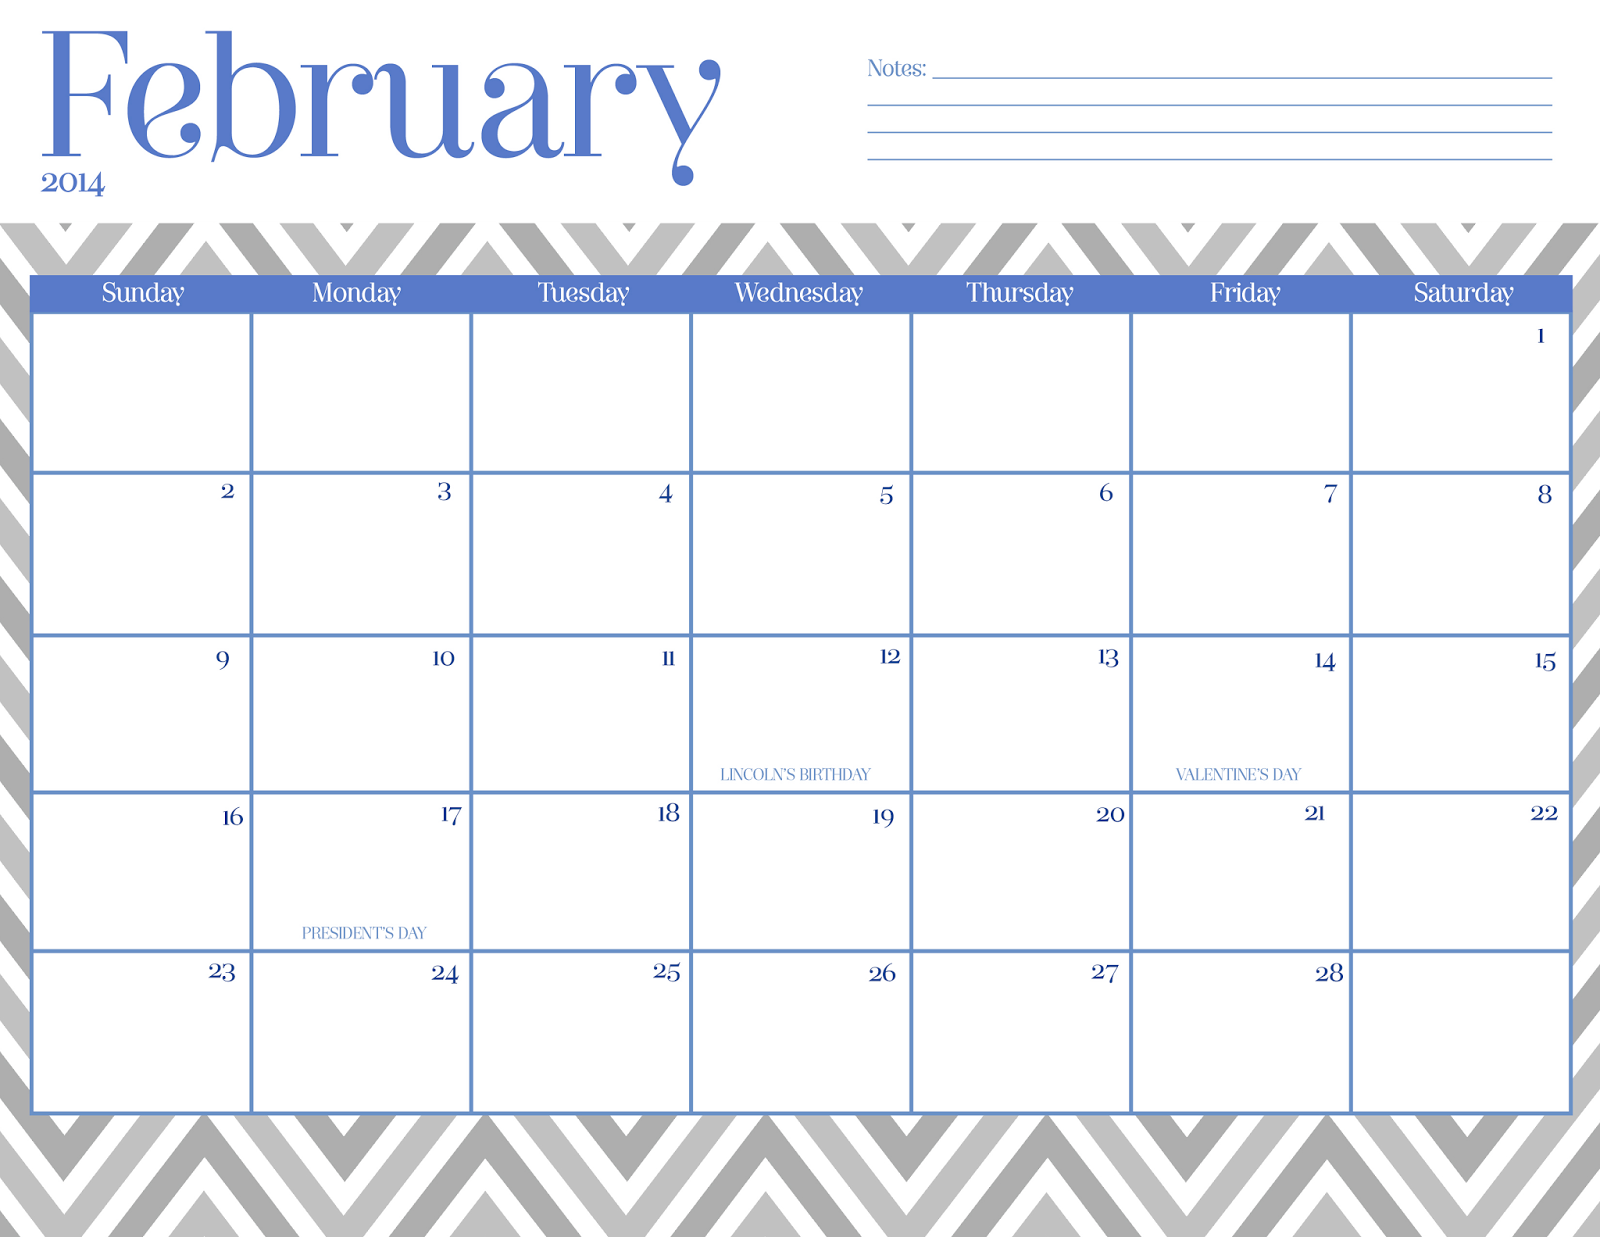 Oh So Lovely Blog: FREE 2015 CALENDARS